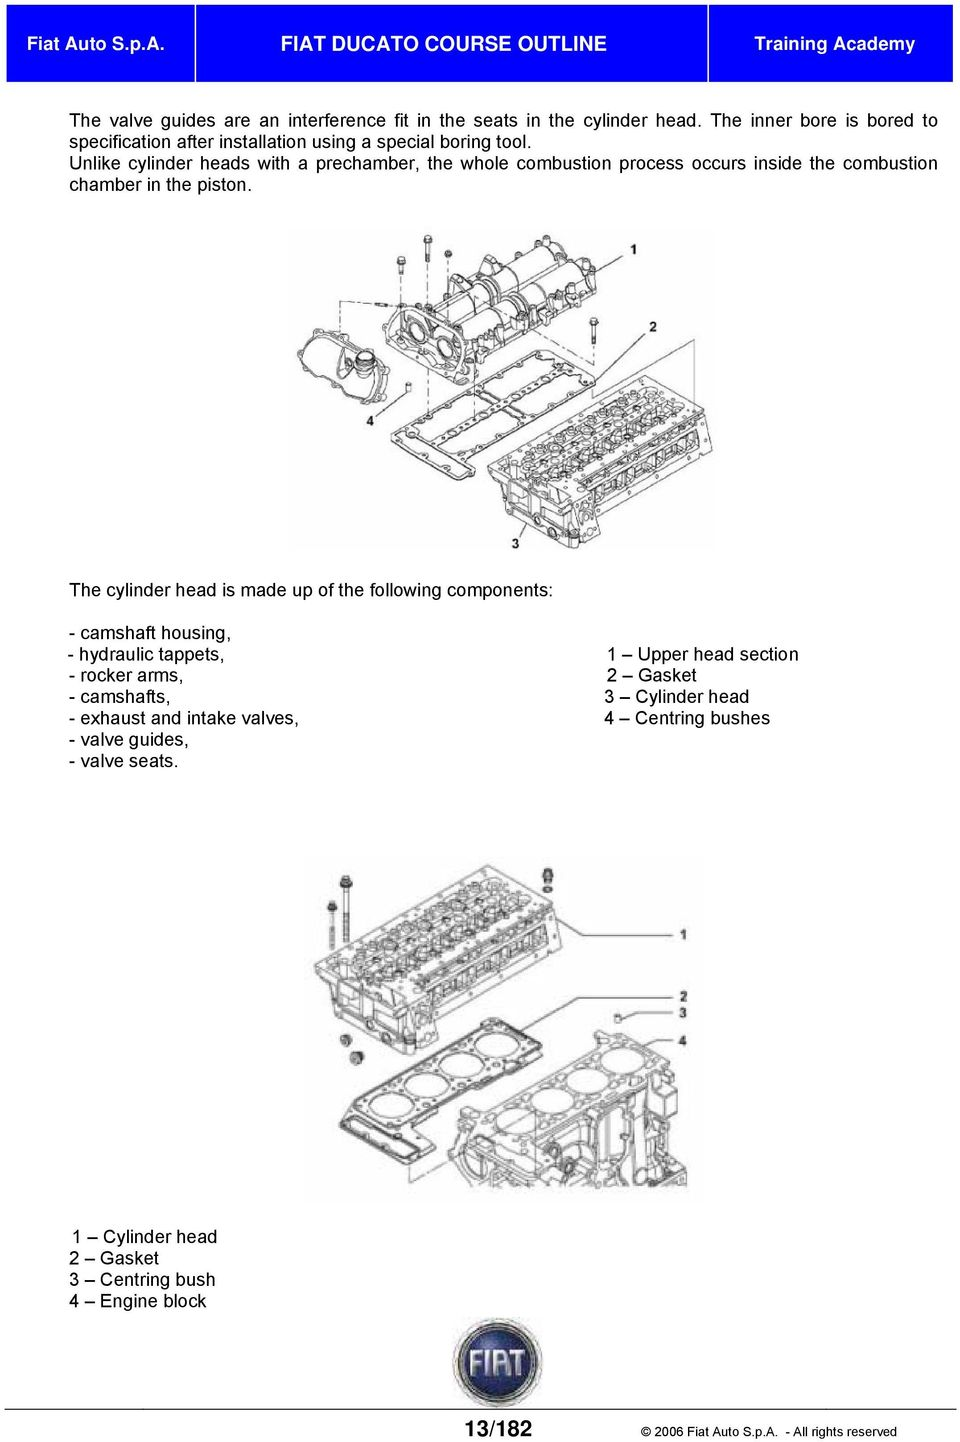 Fiat Ducato Course Outline Second Phase Pdf Miata Engine Plastic Skirt Diagram Unlike Cylinder Heads With A Prechamber The Whole Combustion Process Occurs Inside Chamber